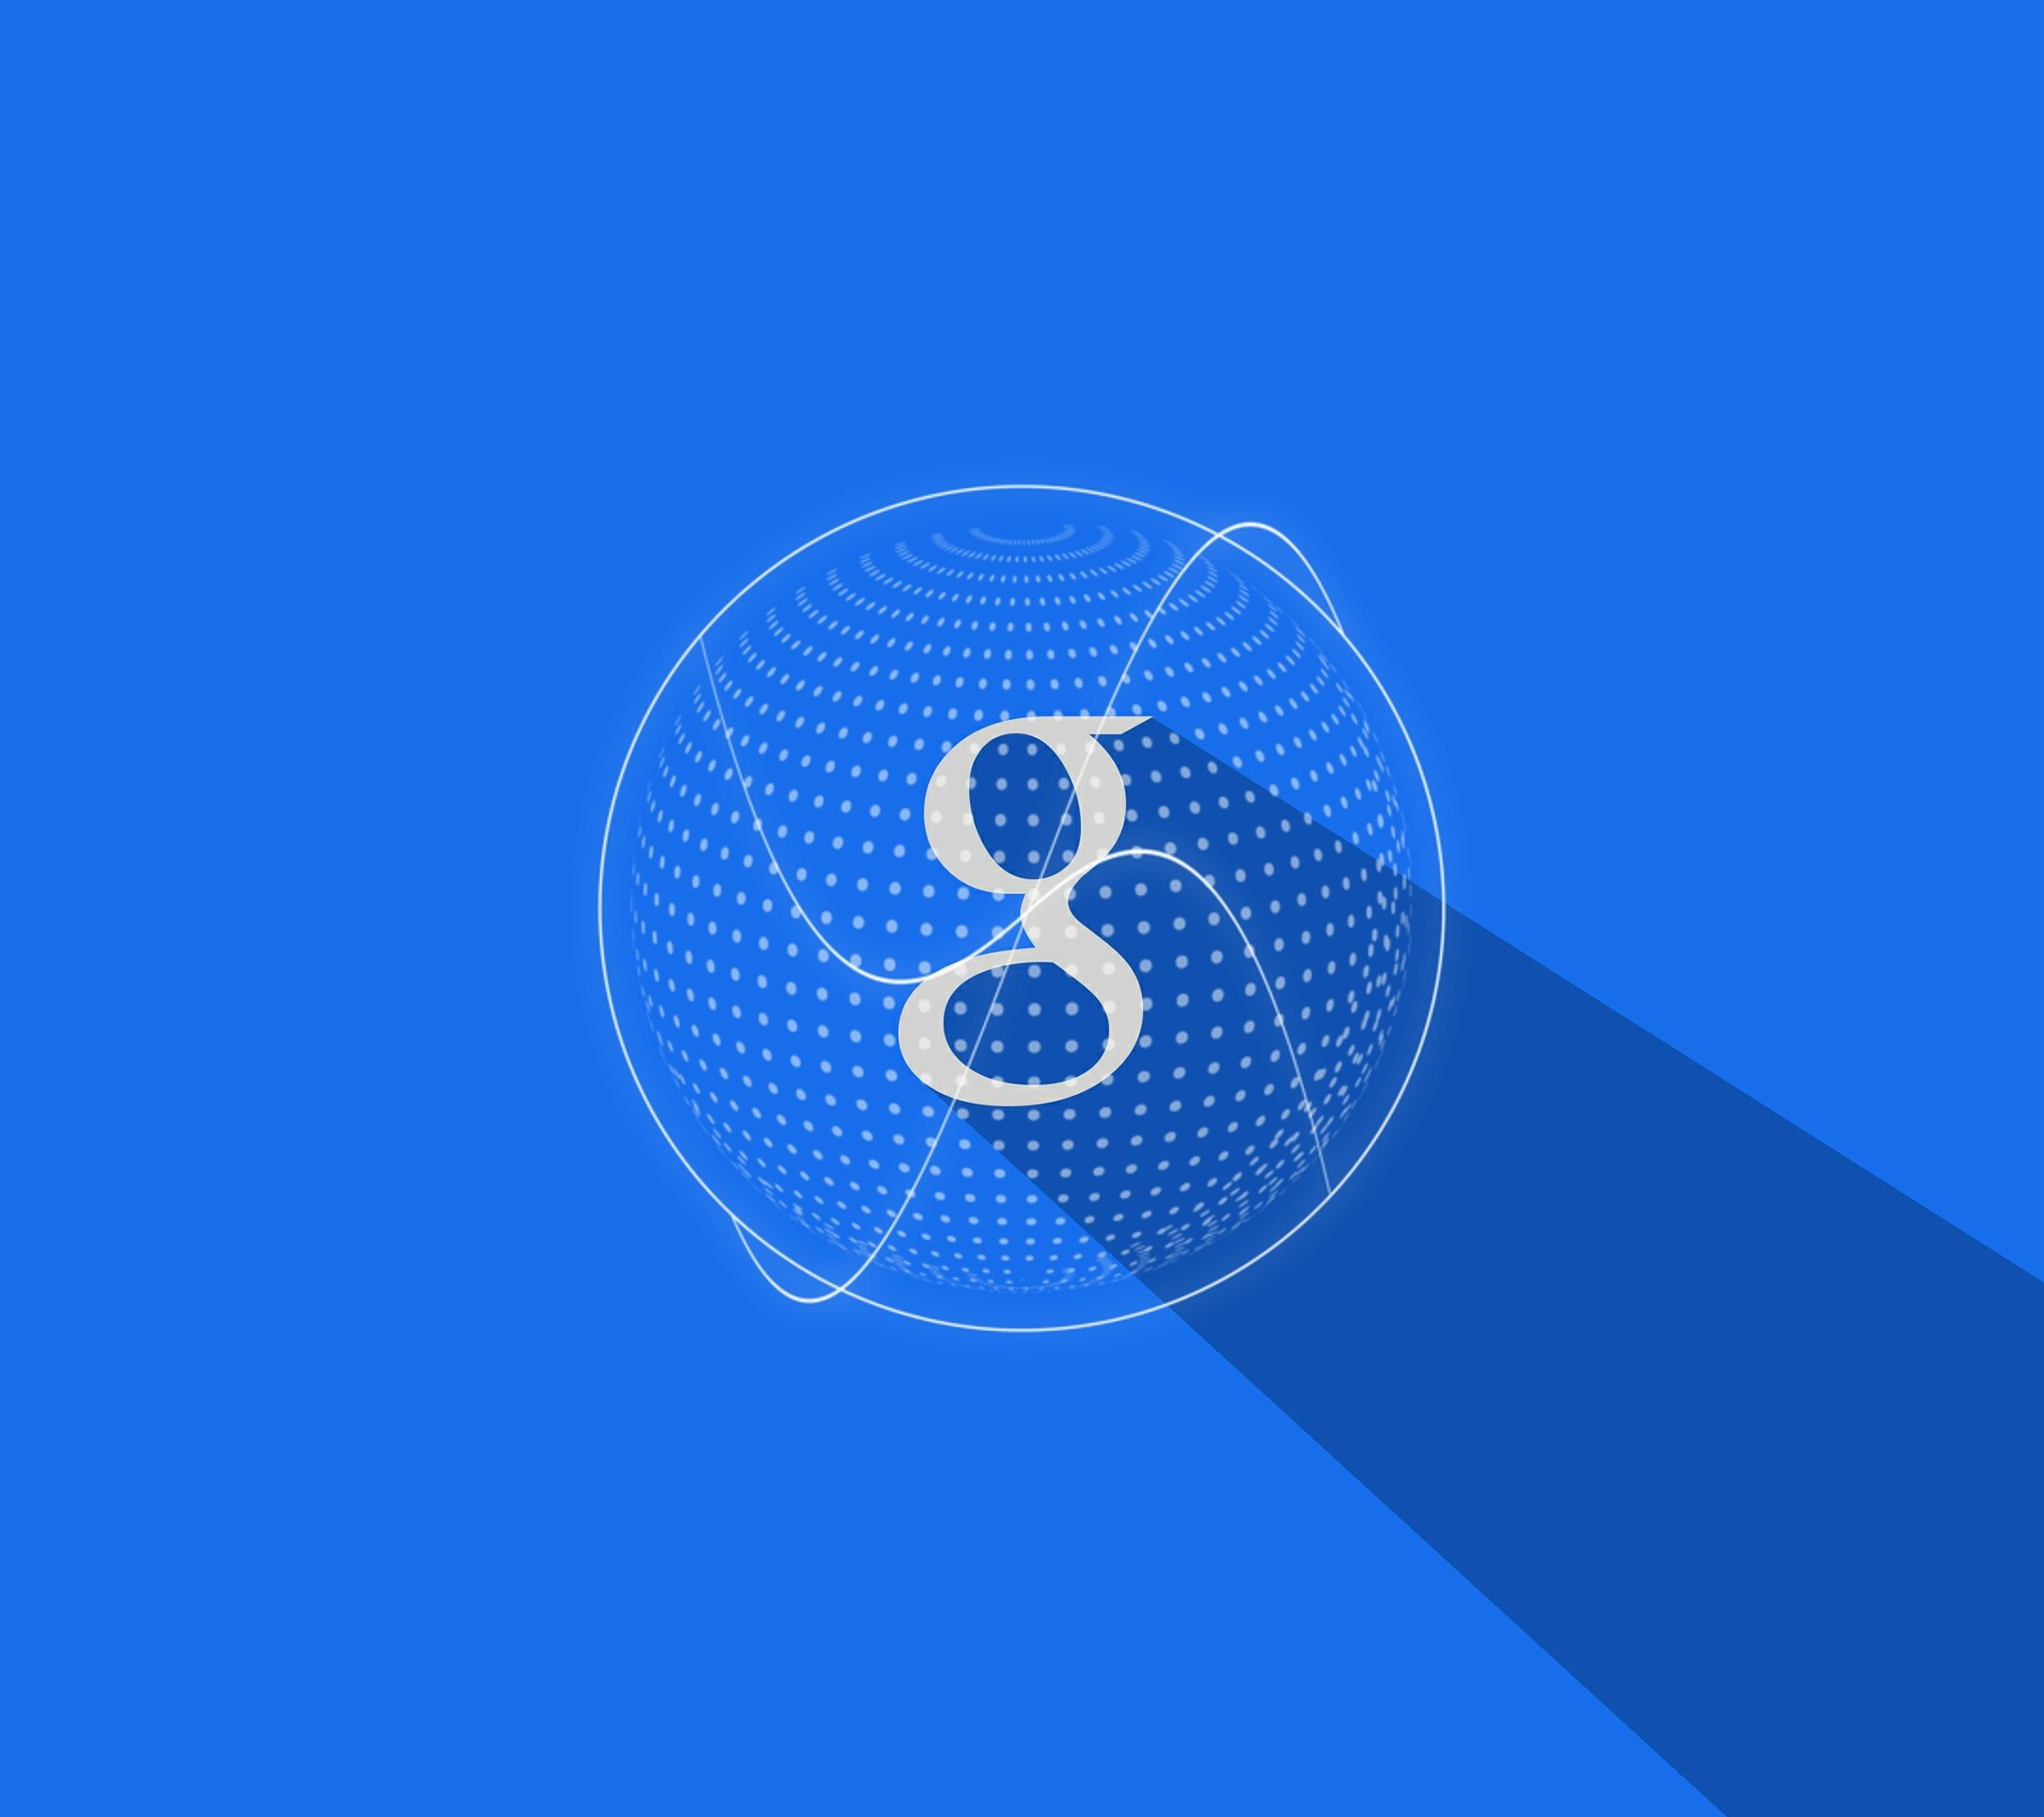 Minimalism google material design hd abstract 4k for Material minimalism